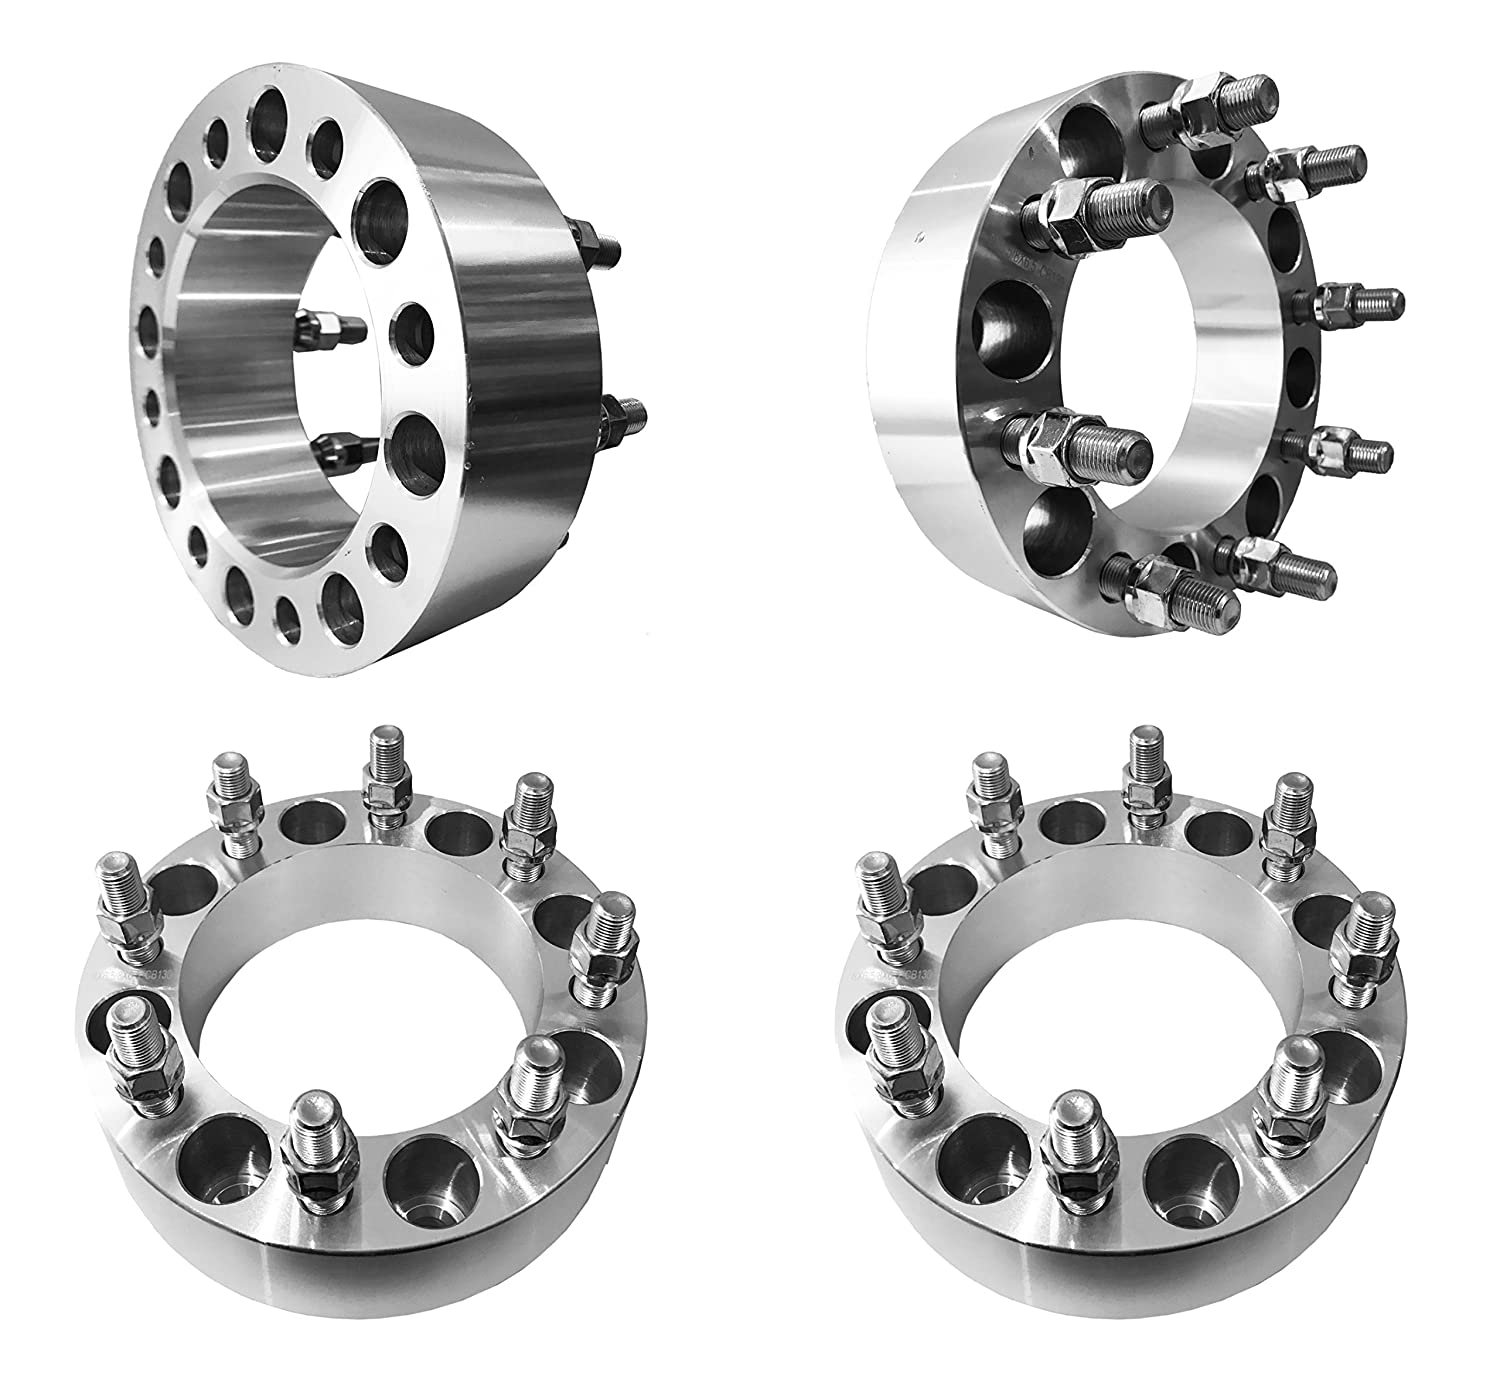 2' 8-Lug Wheel Spacers 8x6.5 (8x165.1mm) For 2000-2010 Chevy Silverado 2500HD with M14x1.5 Studs (Silver) (4-Pack) FAS Motorsports